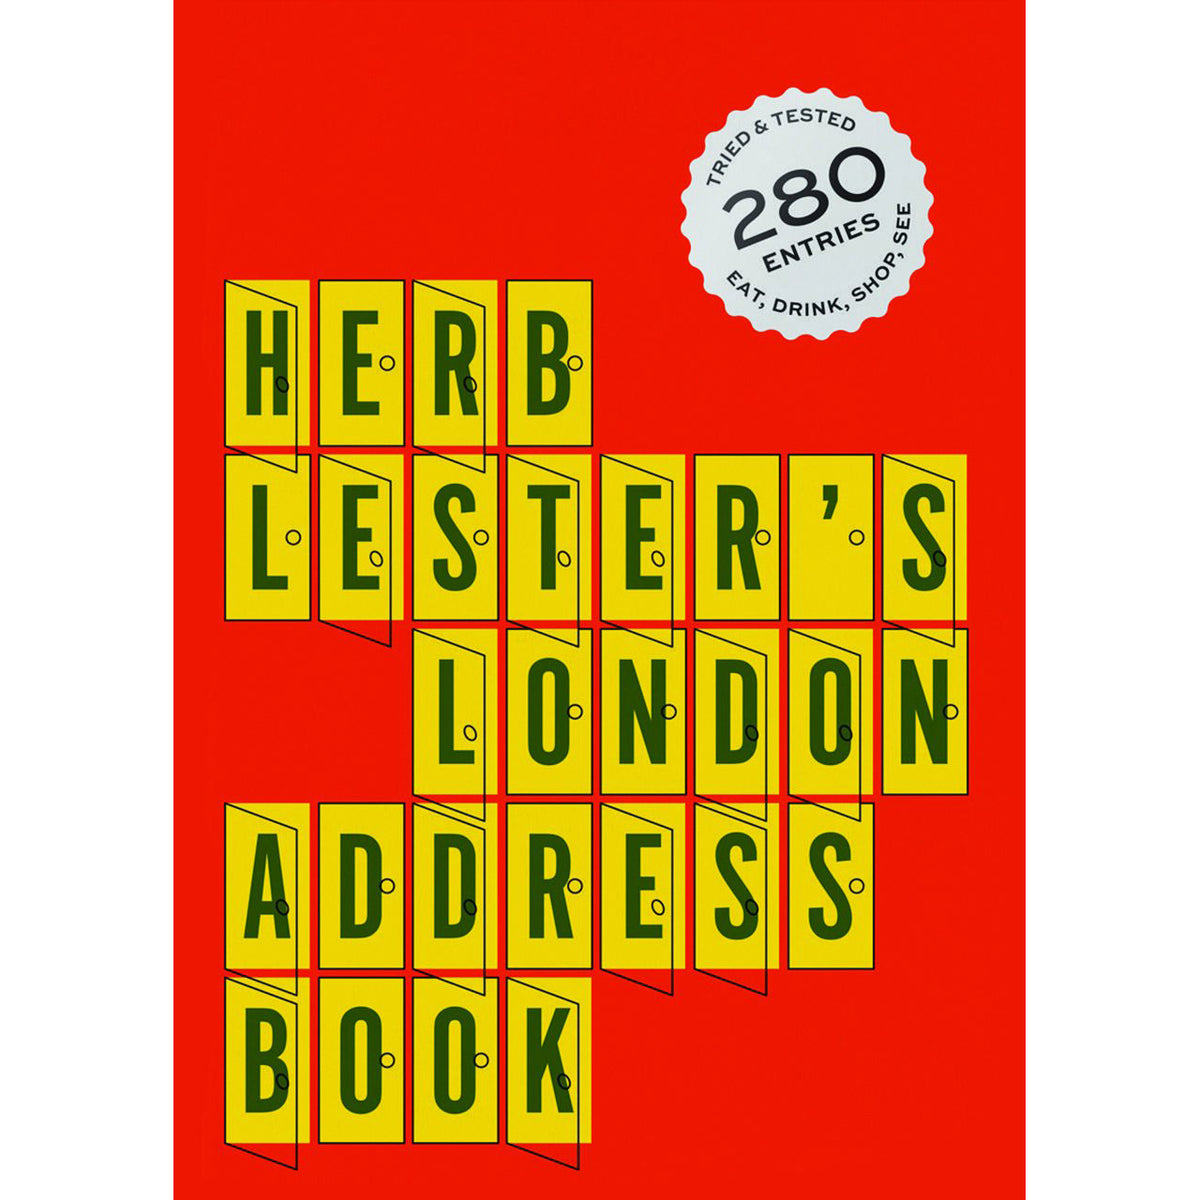 Cover of Herb Lester's London Address Book